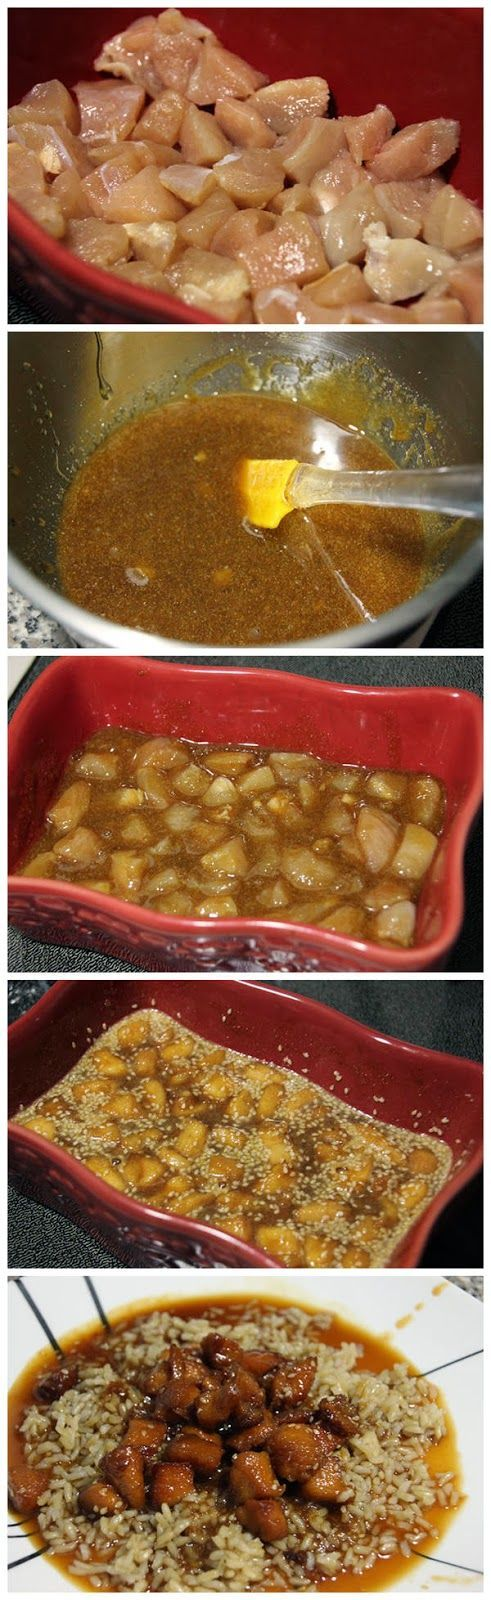 Quick and Easy Recipe : Sesame Chicken Ingredients 4 chicken tenderloins. cut into small pieces 1/2 cup honey 1/4 cup brown sugar 2 tbsp soy sauce 1 tbsp garlic powder sesame seeds. to taste 1 package of brown rice